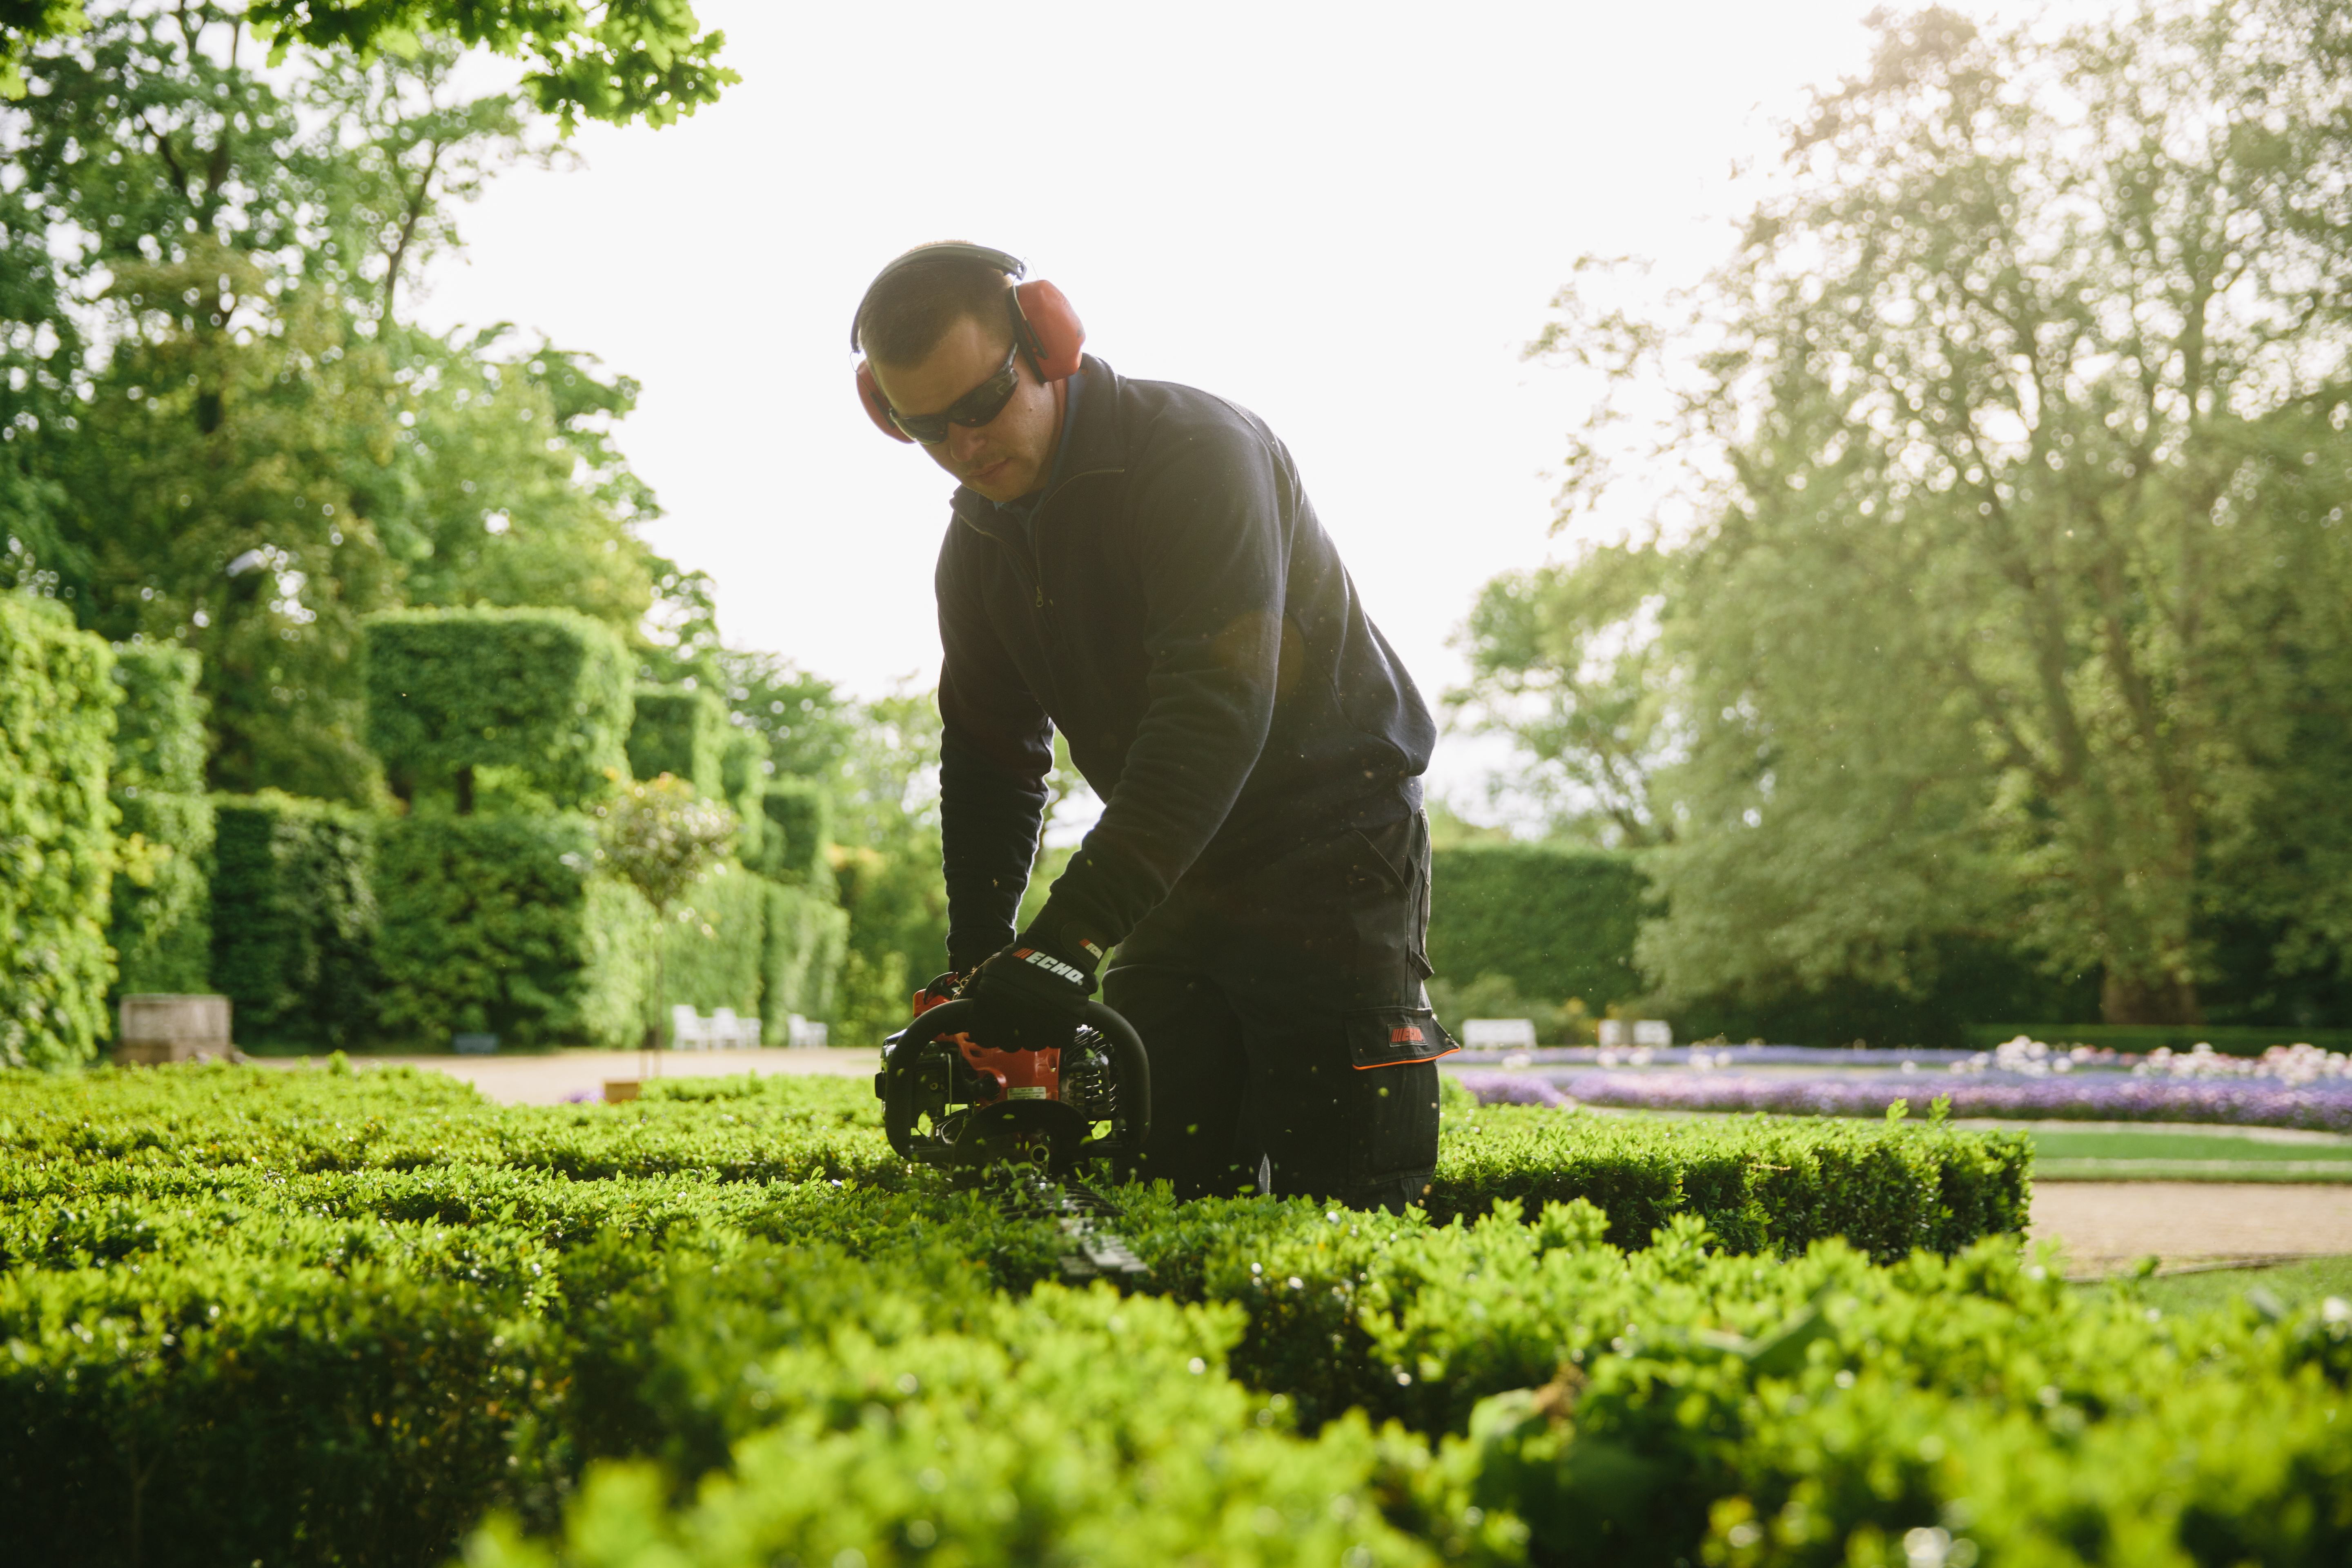 Man trimming hedges with an Echo hedge trimmer.